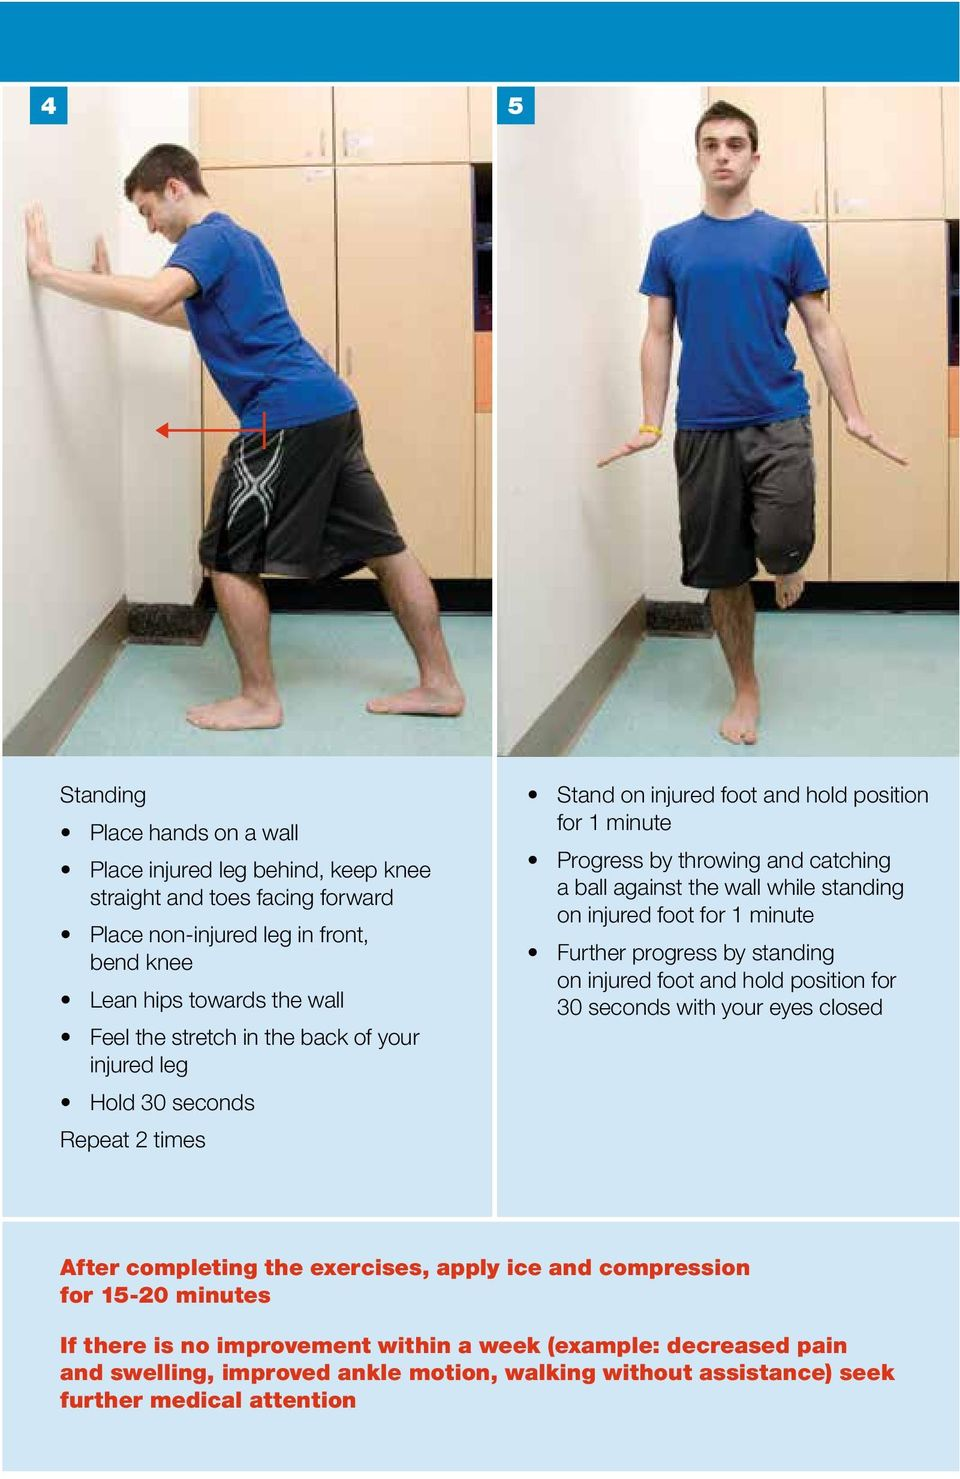 while standing on injured foot for 1 minute Further progress by standing on injured foot and hold position for 30 seconds with your eyes closed After completing the exercises, apply ice